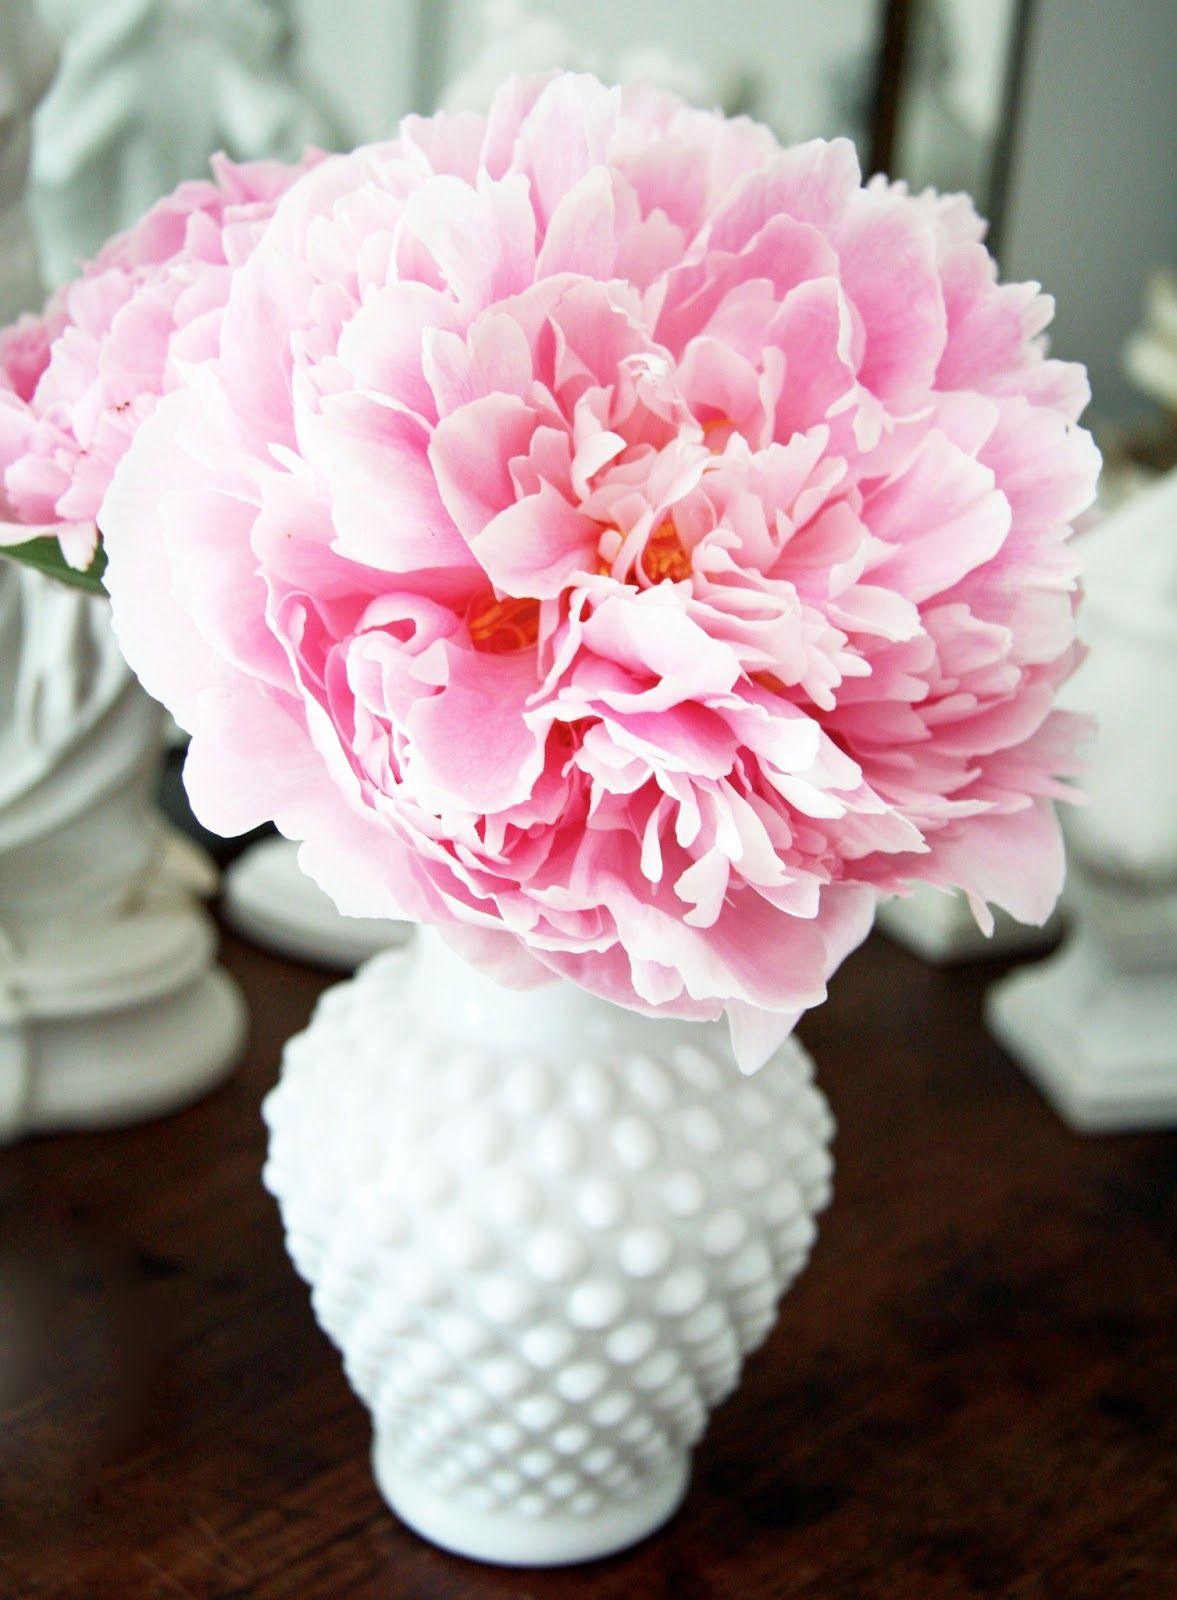 A country farmhouse the lovely peony pink pinterest country i had a pink peonie tree in my back yard and every spring my dear friend and i admired this beautiful flower izmirmasajfo